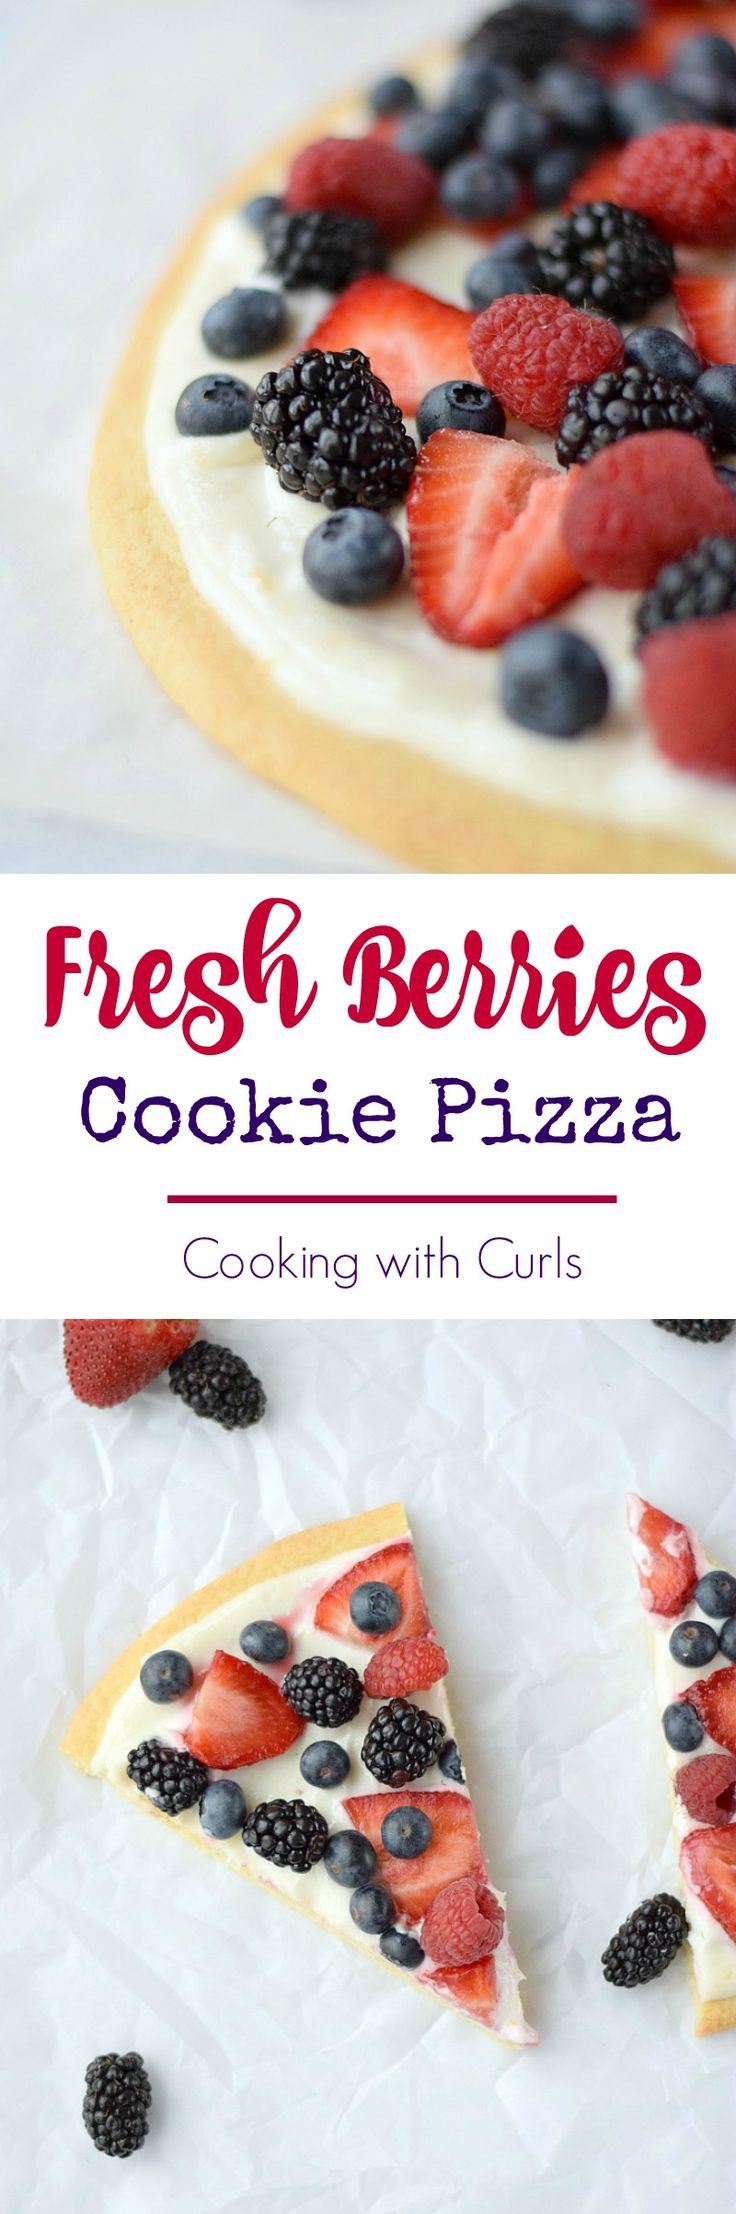 Celebrate summer's wonderful fruits with a delicious Fresh Berries Cookie Pizza and a nice cold drink | cookingwithcurls.com